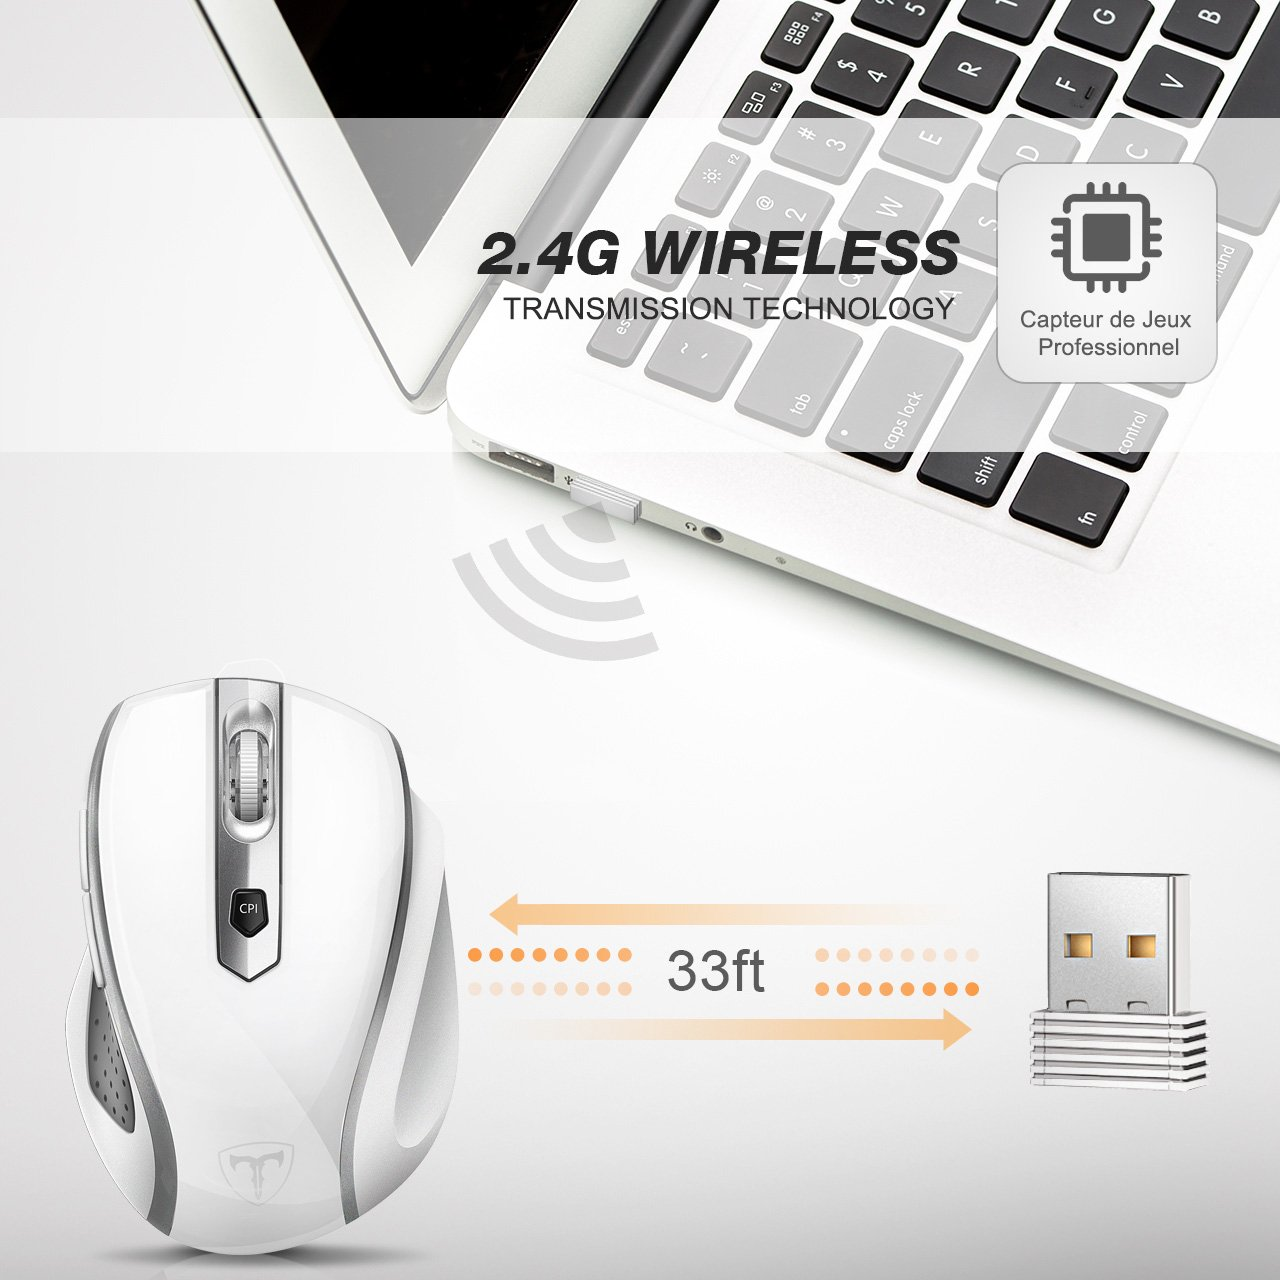 VicTsing MM057 2.4G Wireless Portable Mobile Mouse Optical Mice with USB Receiver, 5 Adjustable DPI Levels, 6 Buttons for Notebook, PC, Laptop, Computer, Macbook - White by VicTsing (Image #3)